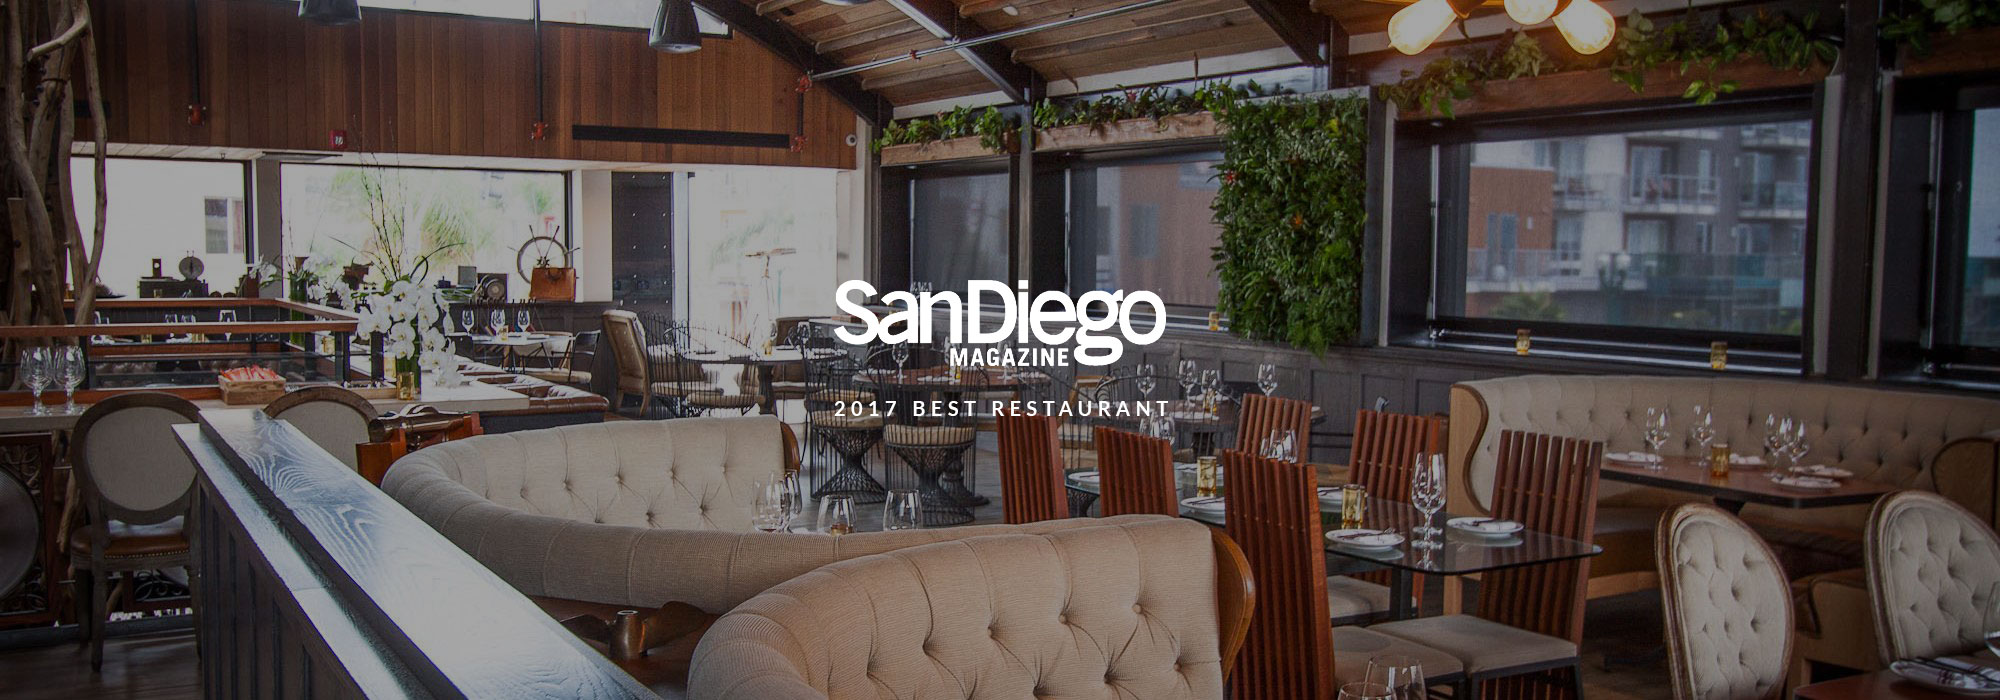 San Diego Magazine 2017 Best Restaurant Winner